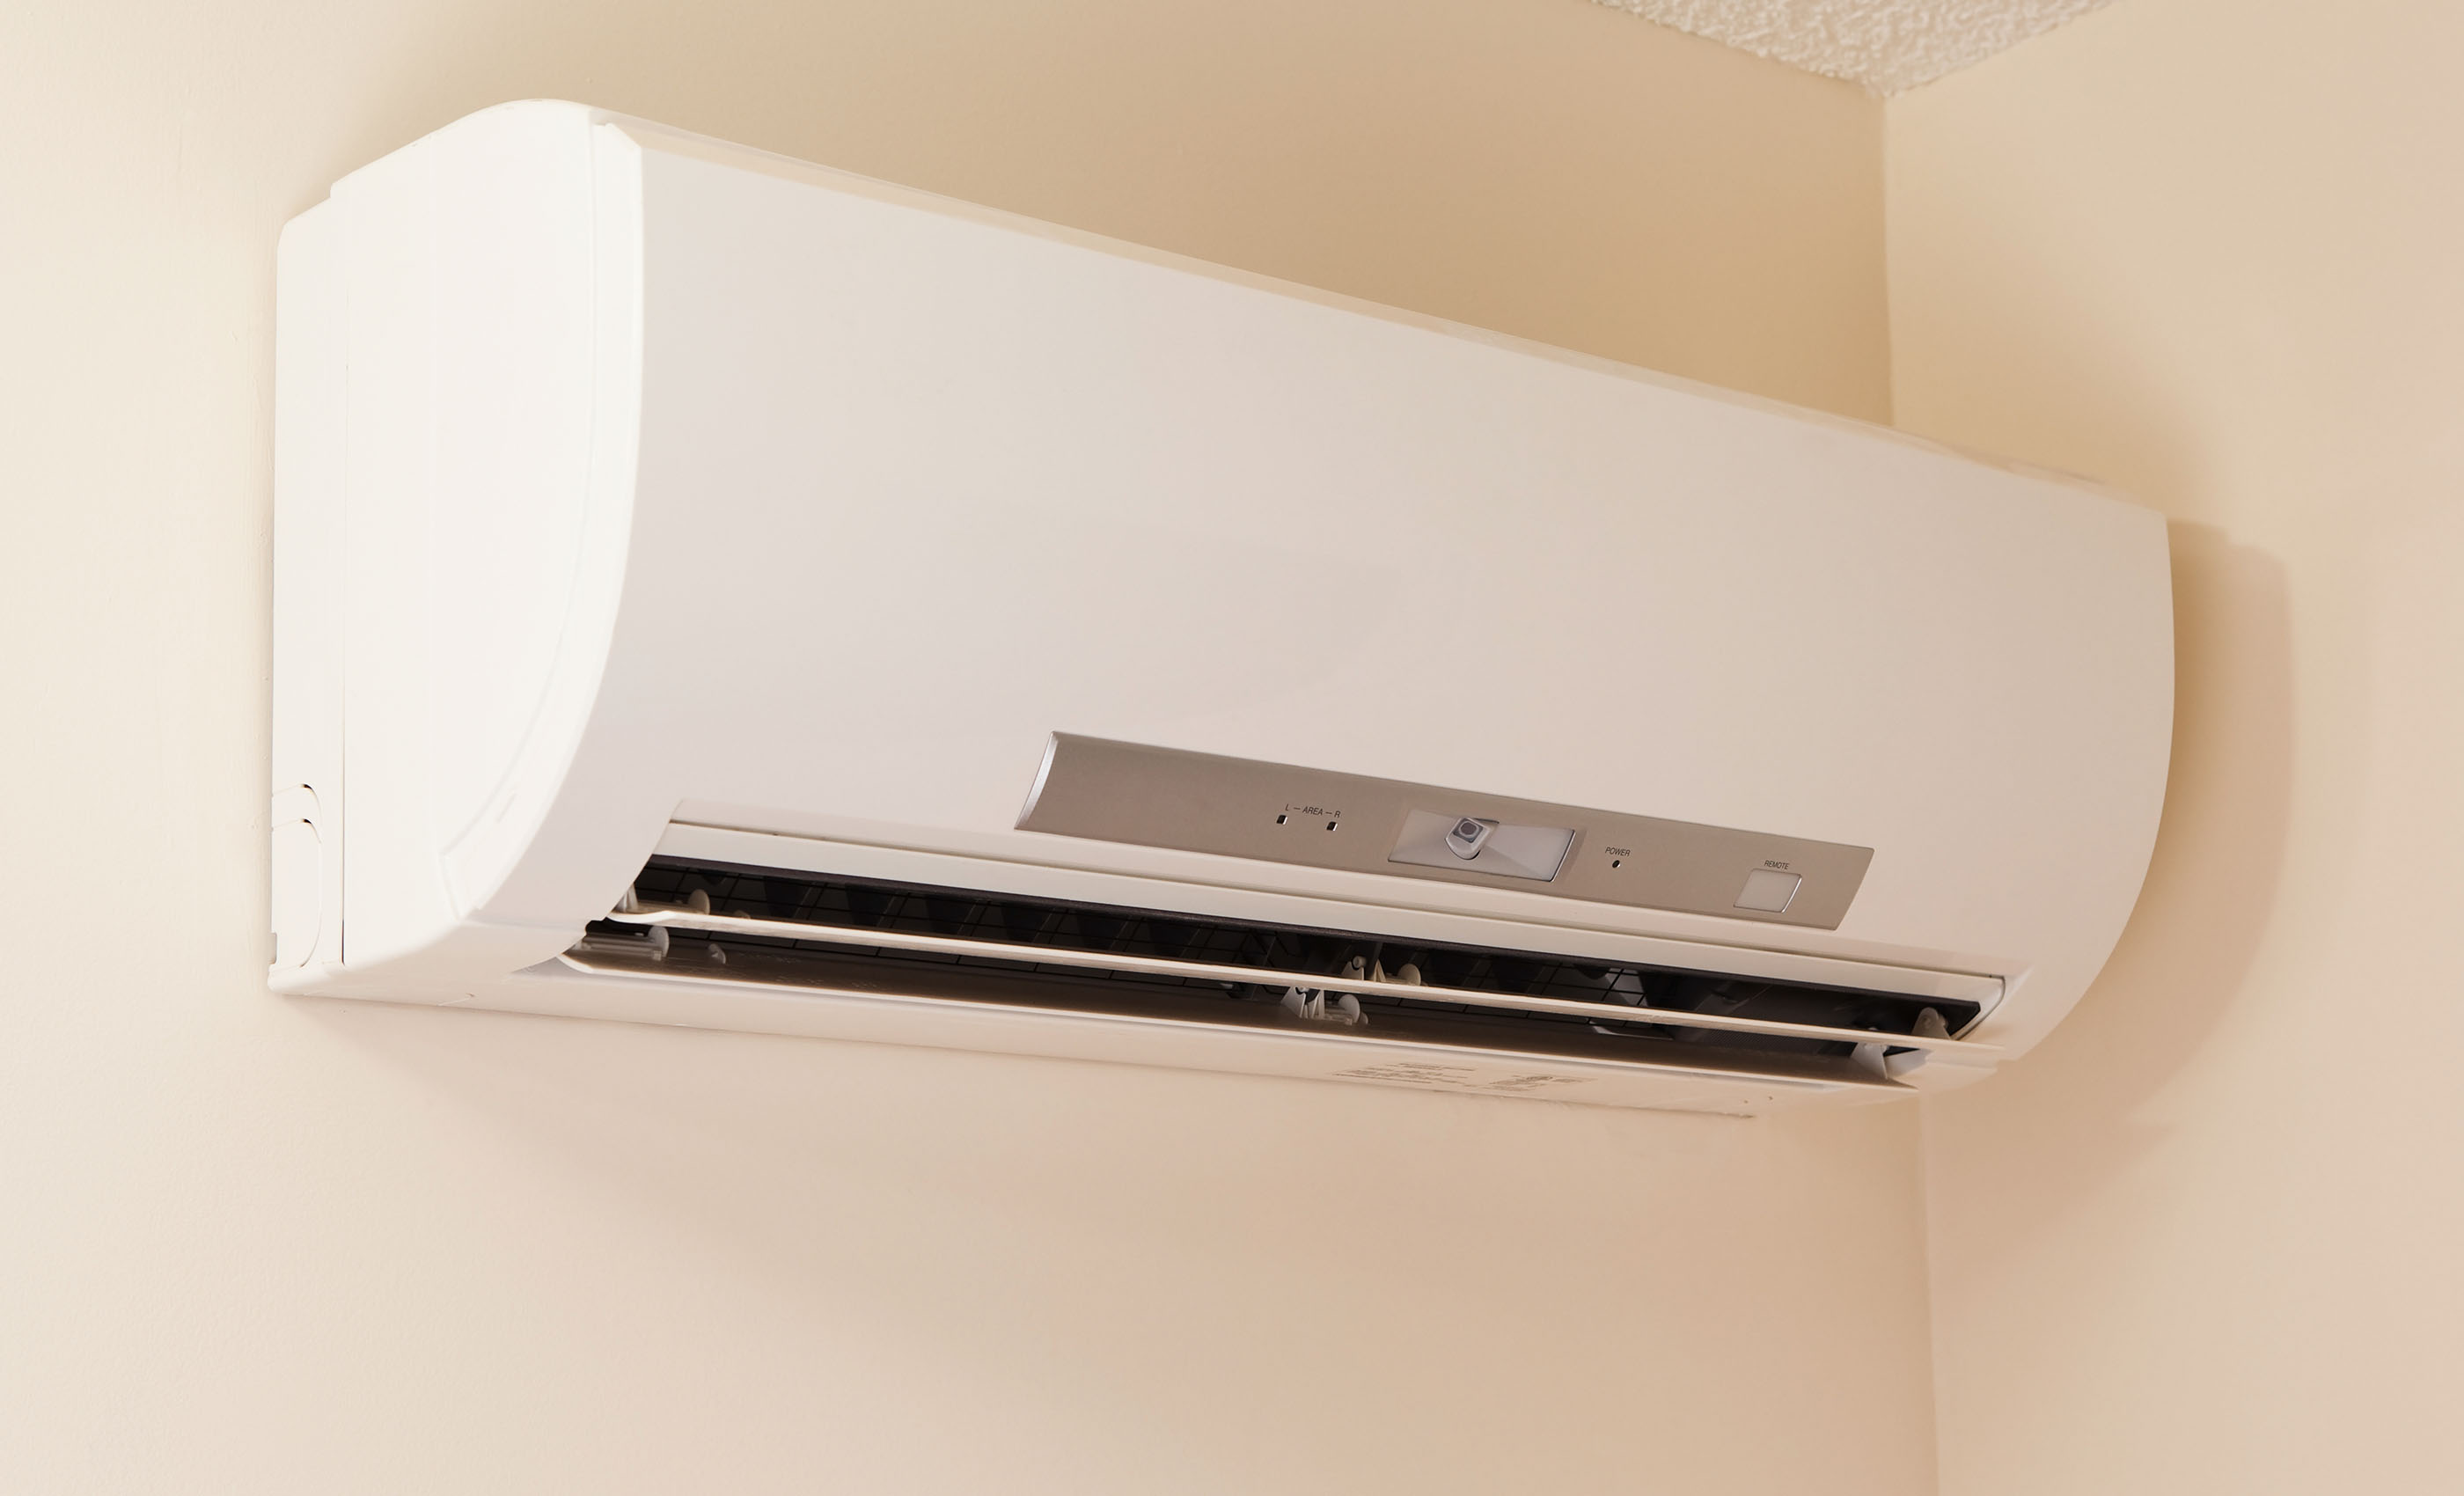 A Mini Split Ductless Air Conditioning System.